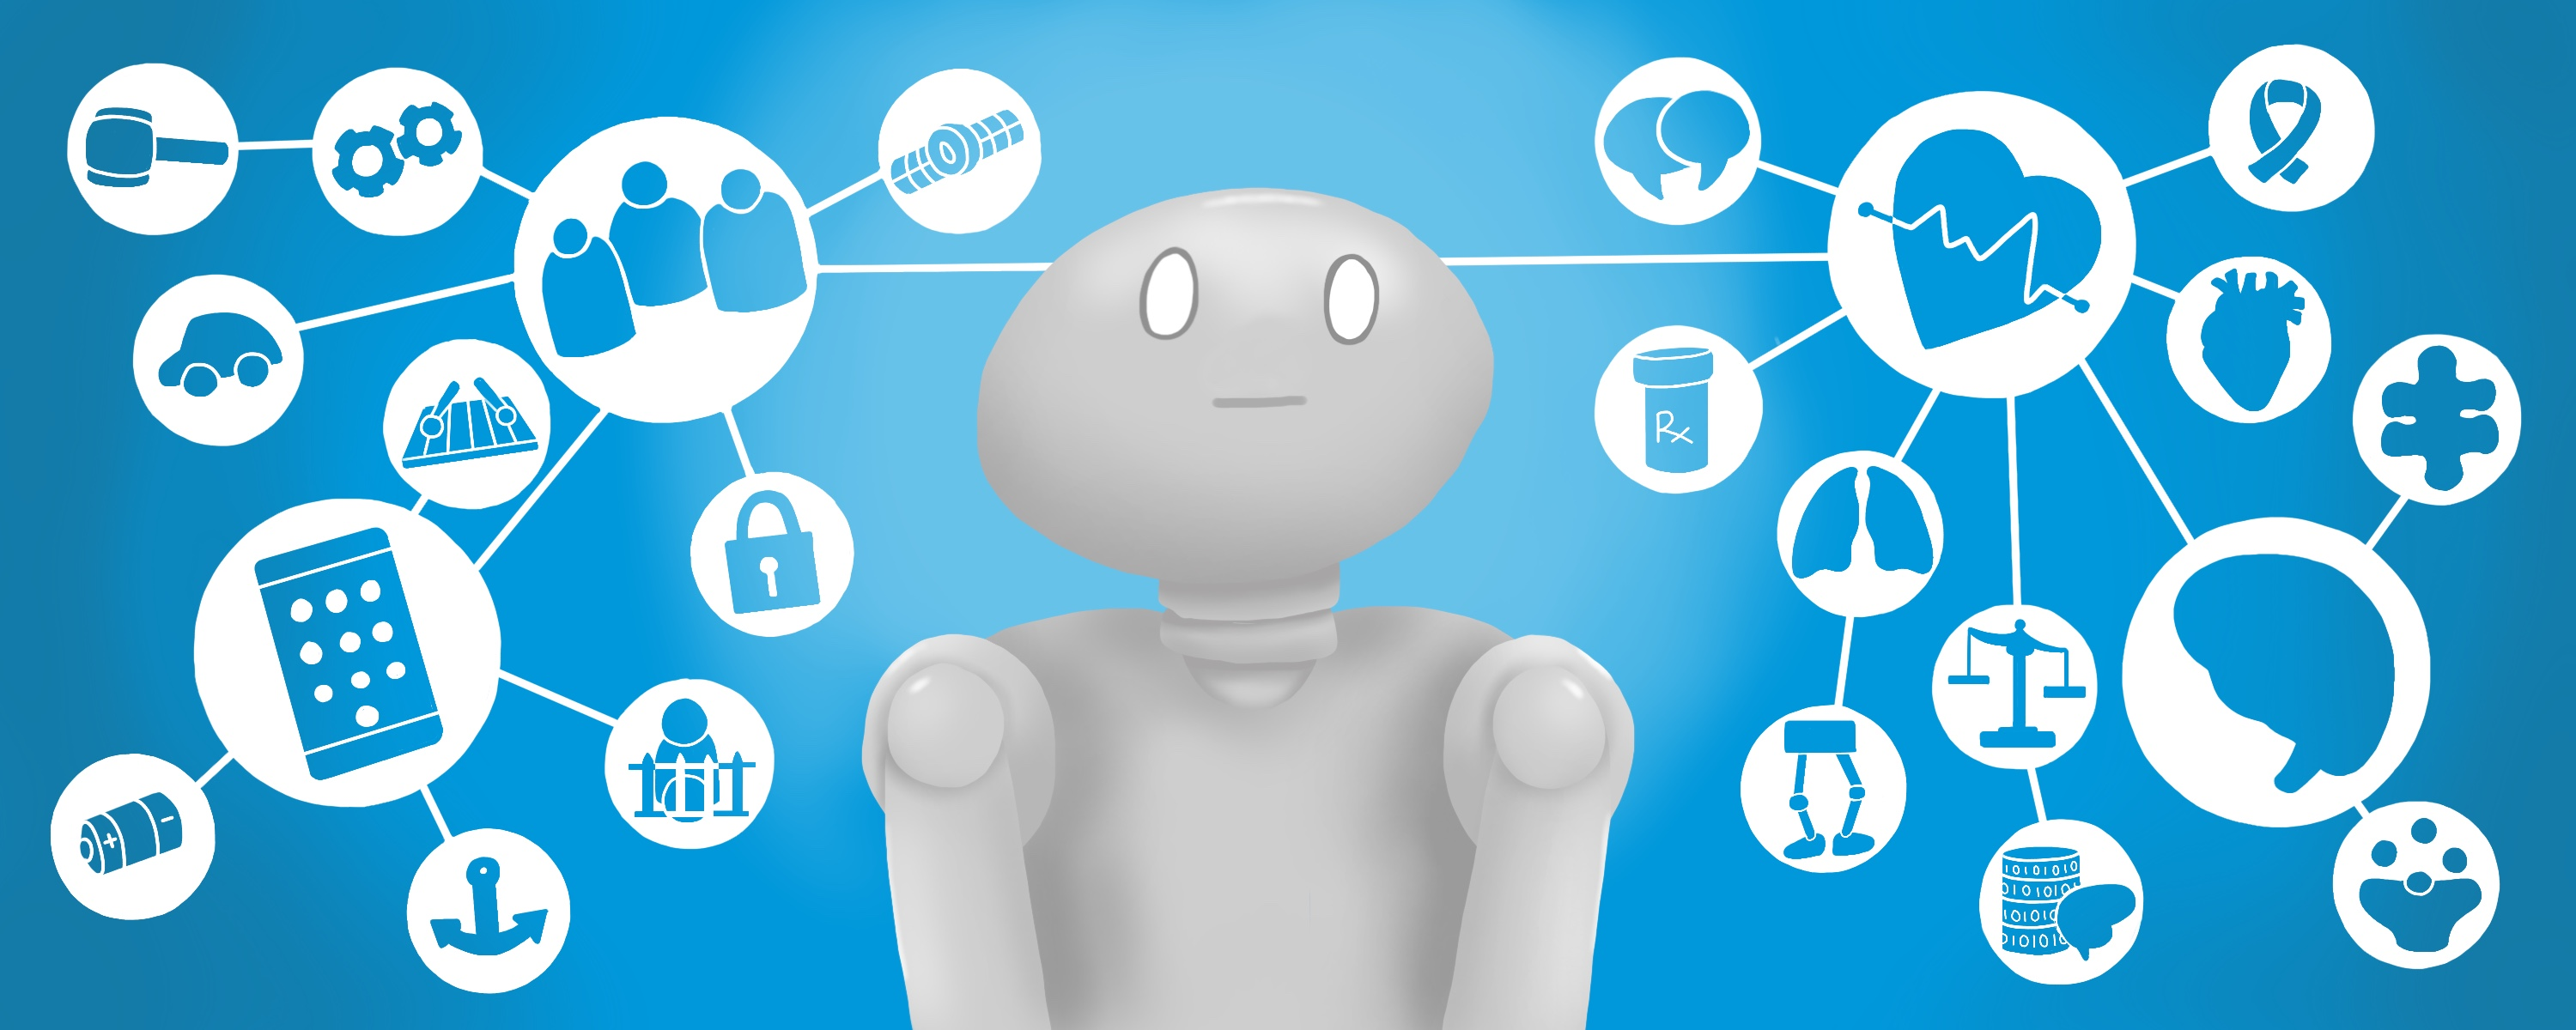 Remodel Buyer Help By way of AI-Powered Chatbots